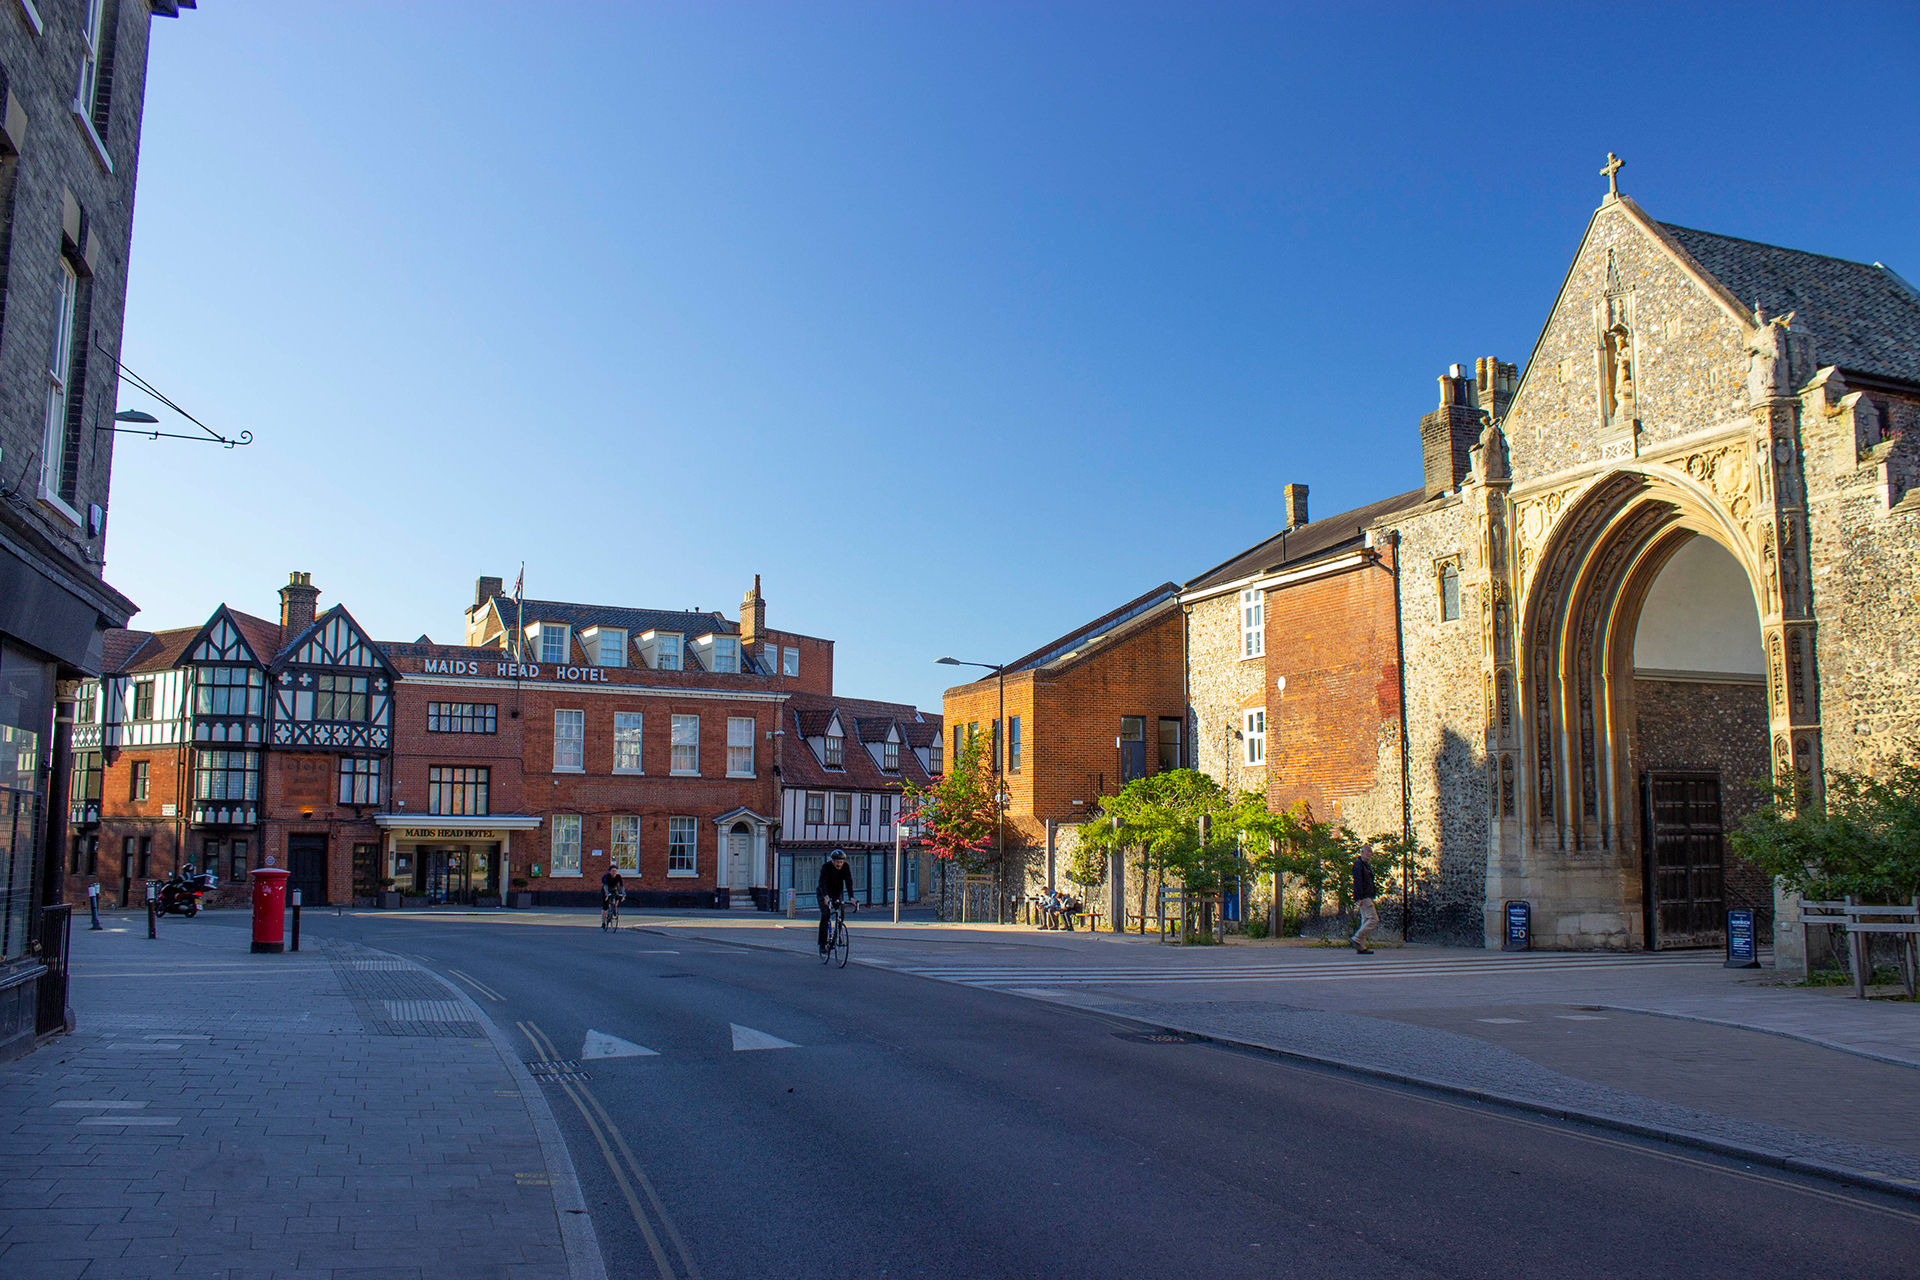 tombland norwich cathedral gate and maids head hotel